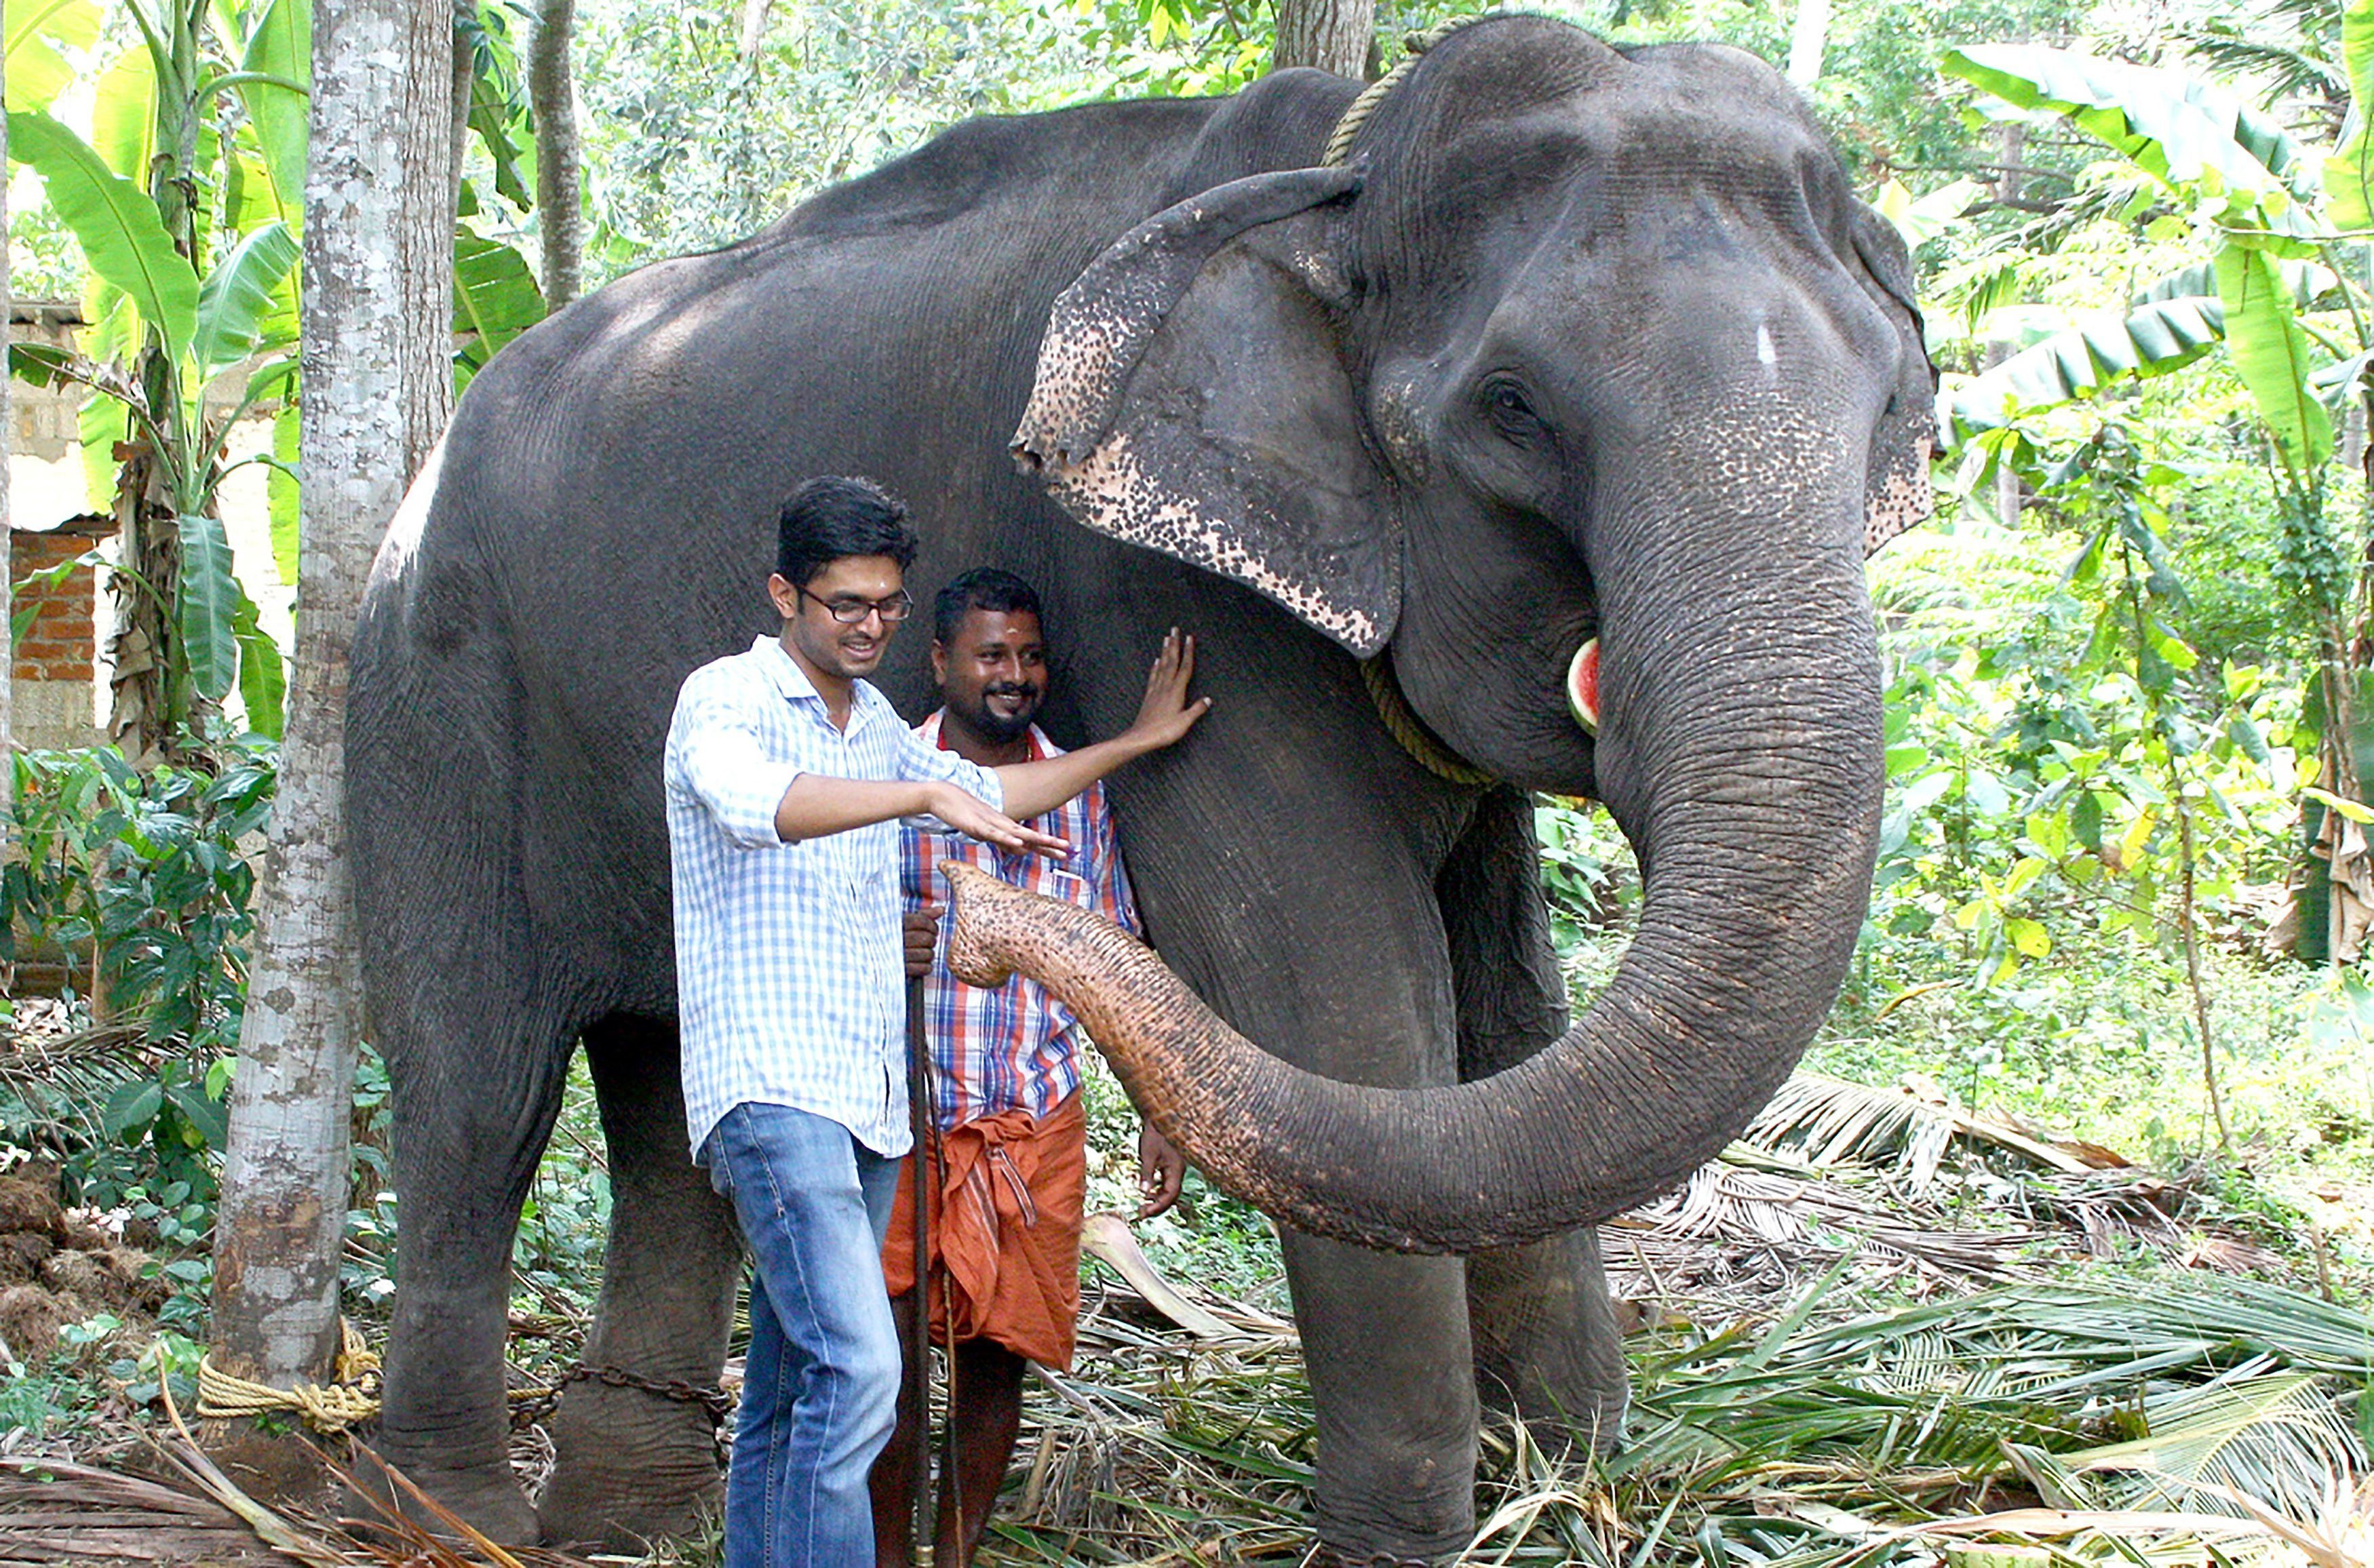 This photo taken on April 18, 2016 shows elderly Indian elephant Dakshayani, awarded the title 'Gaja Muthassi', or elephant granny, with her keeper and a visitor on the grounds of the Chengalloor Mahadeva temple in Thiruvananthapuram in India's southern Kerala state. - An elephant believed to be the oldest ever in captivity has died aged 88 in the southern Indian state of Kerala, officials said February 7, 2019. Awarded the title of 'Gaja Muthassi' (elephant granny), Dakshayani took part in temple rituals and processions for decades, but died after becoming reluctant to eat, her veterinary surgeon said. (Photo by STR / AFP)        (Photo credit should read STR/AFP/Getty Images)